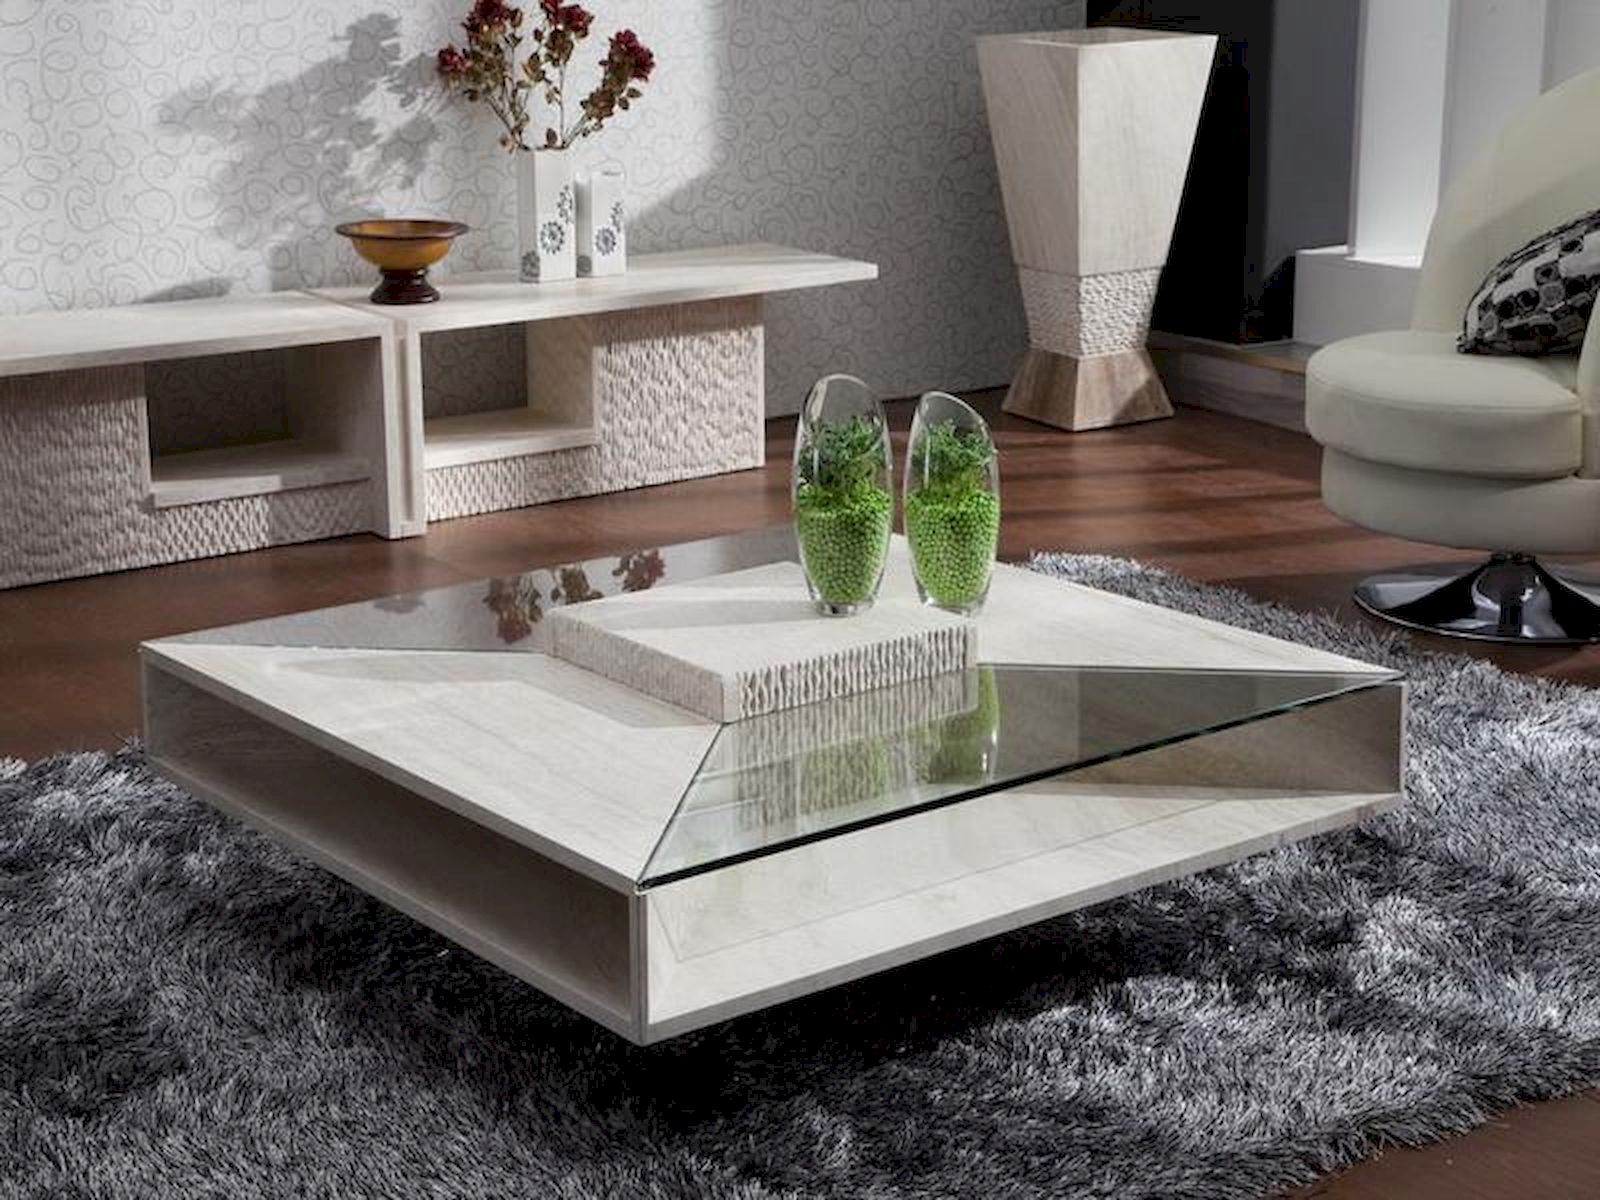 Simple Chic Coffee Table Decoration Ideas Home Design Coffee Table Decorating Coffee Tables Glass Coffee Table Decor [ 1200 x 1600 Pixel ]